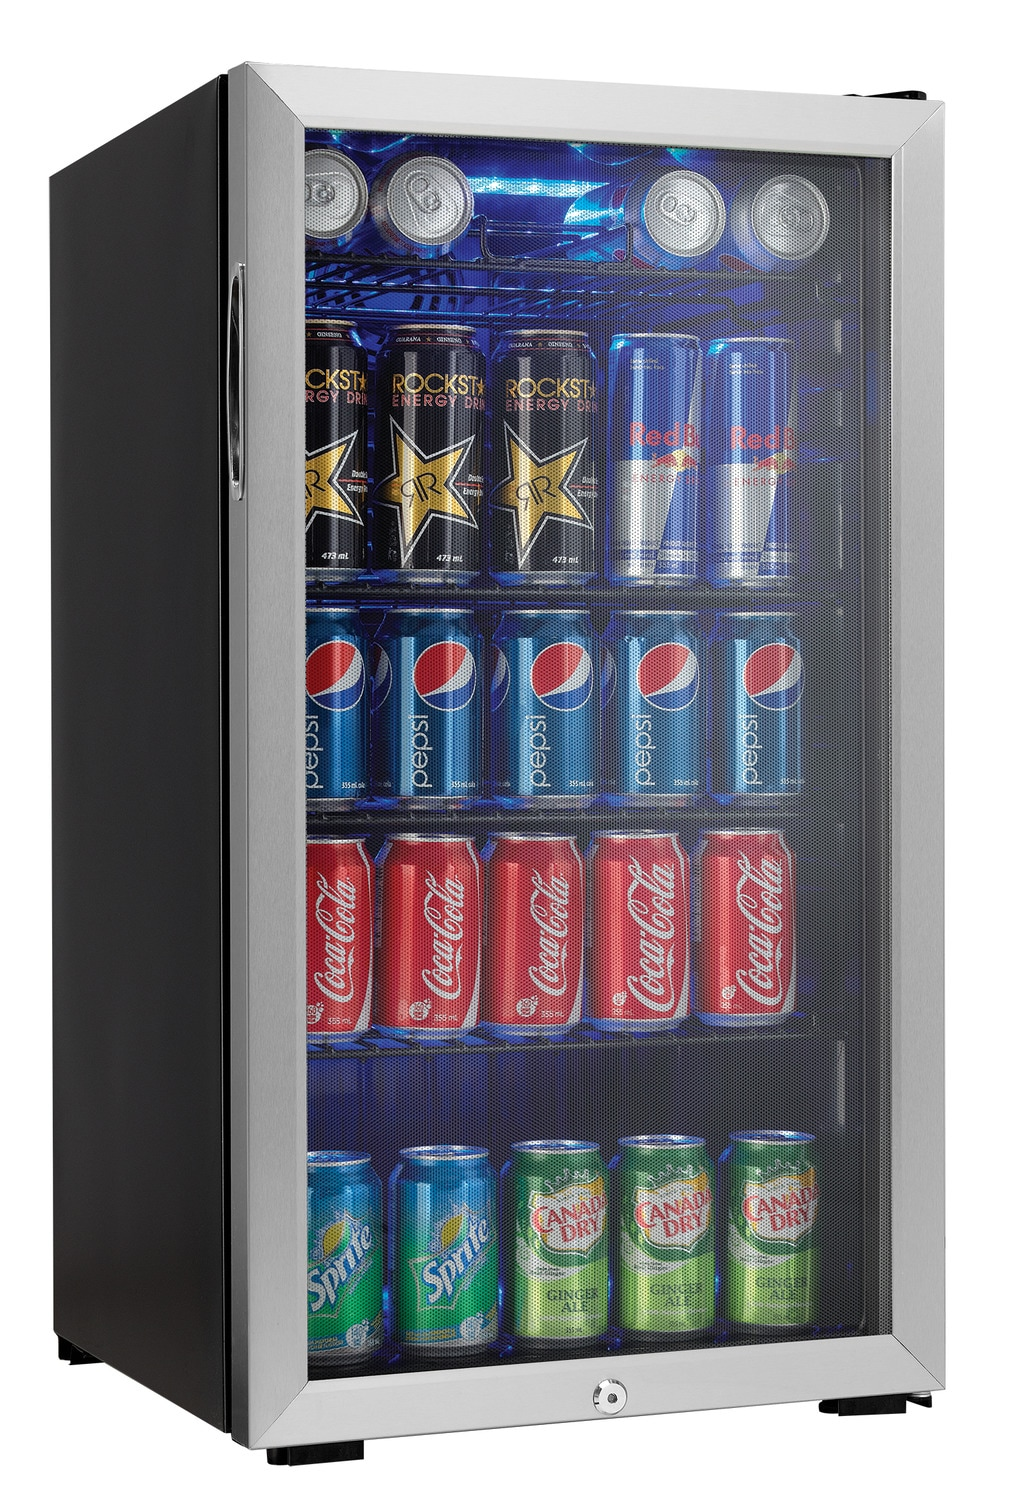 Danby Stainless Steel Beverage Centre (3.3 Cu. Ft.) - DBC120CBLS